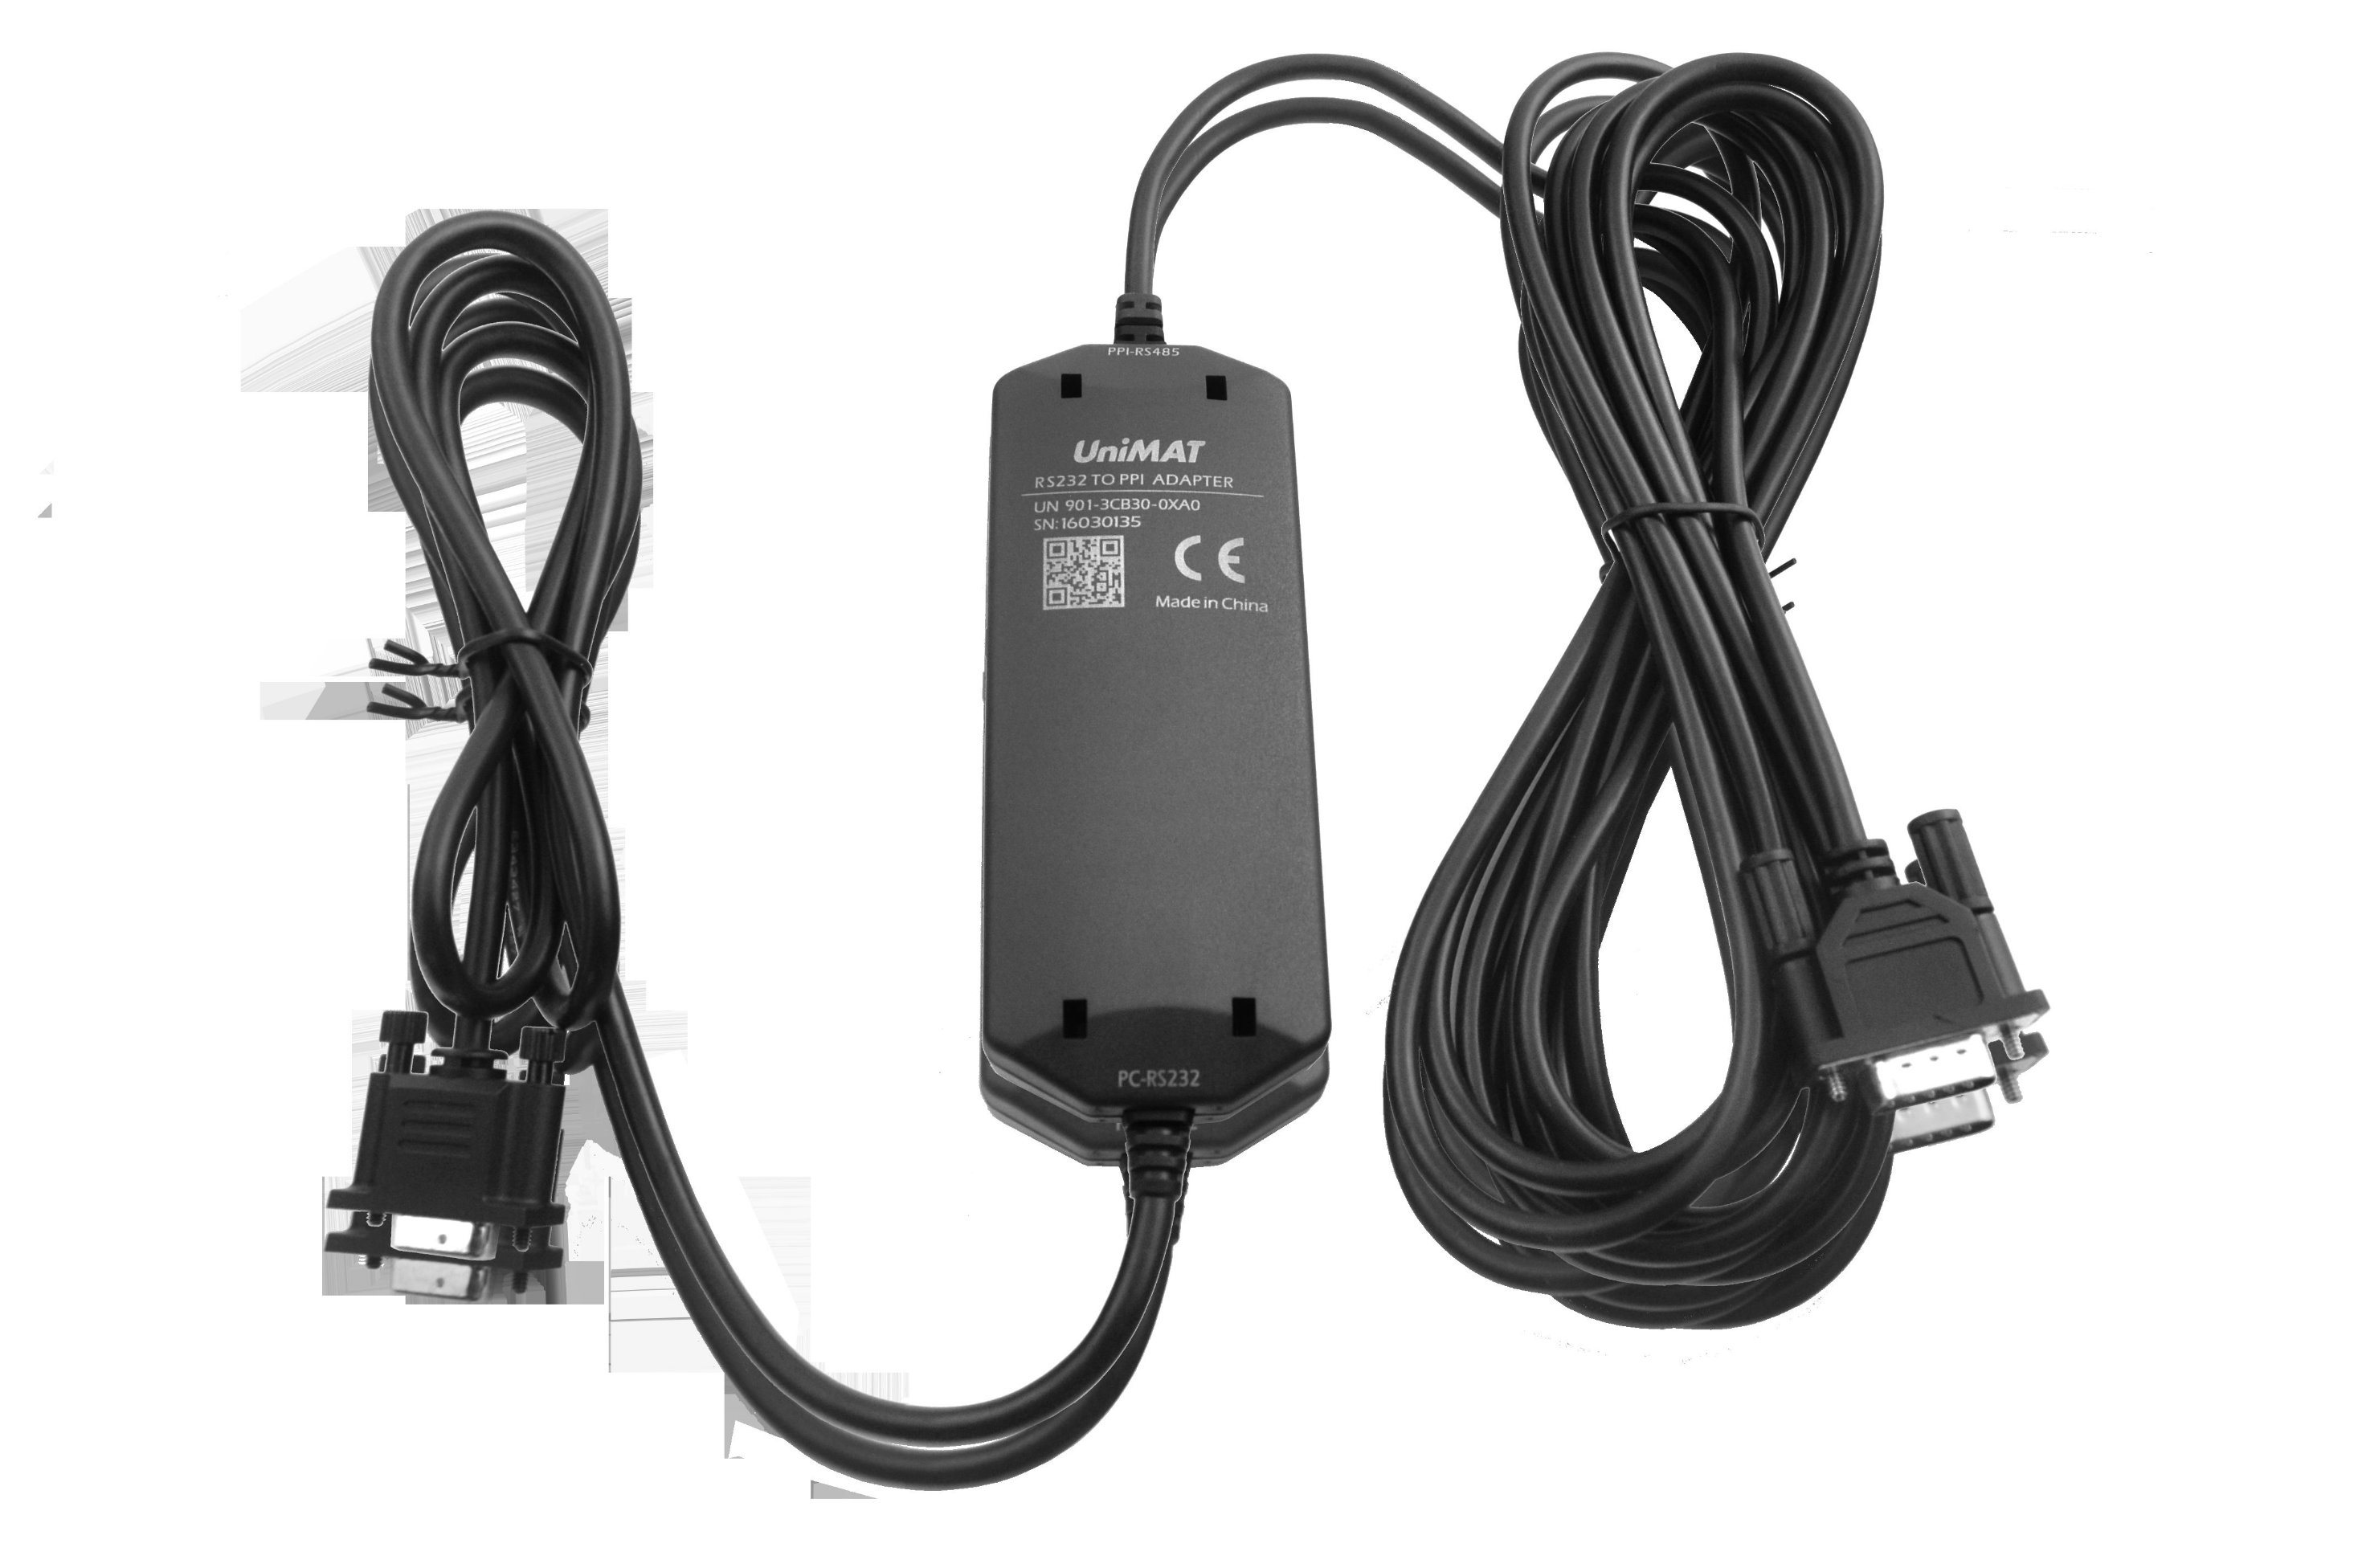 [Hot Item] Siemens S7 200 Programming Cable with 9 Pin RS232 PPI Serial Port